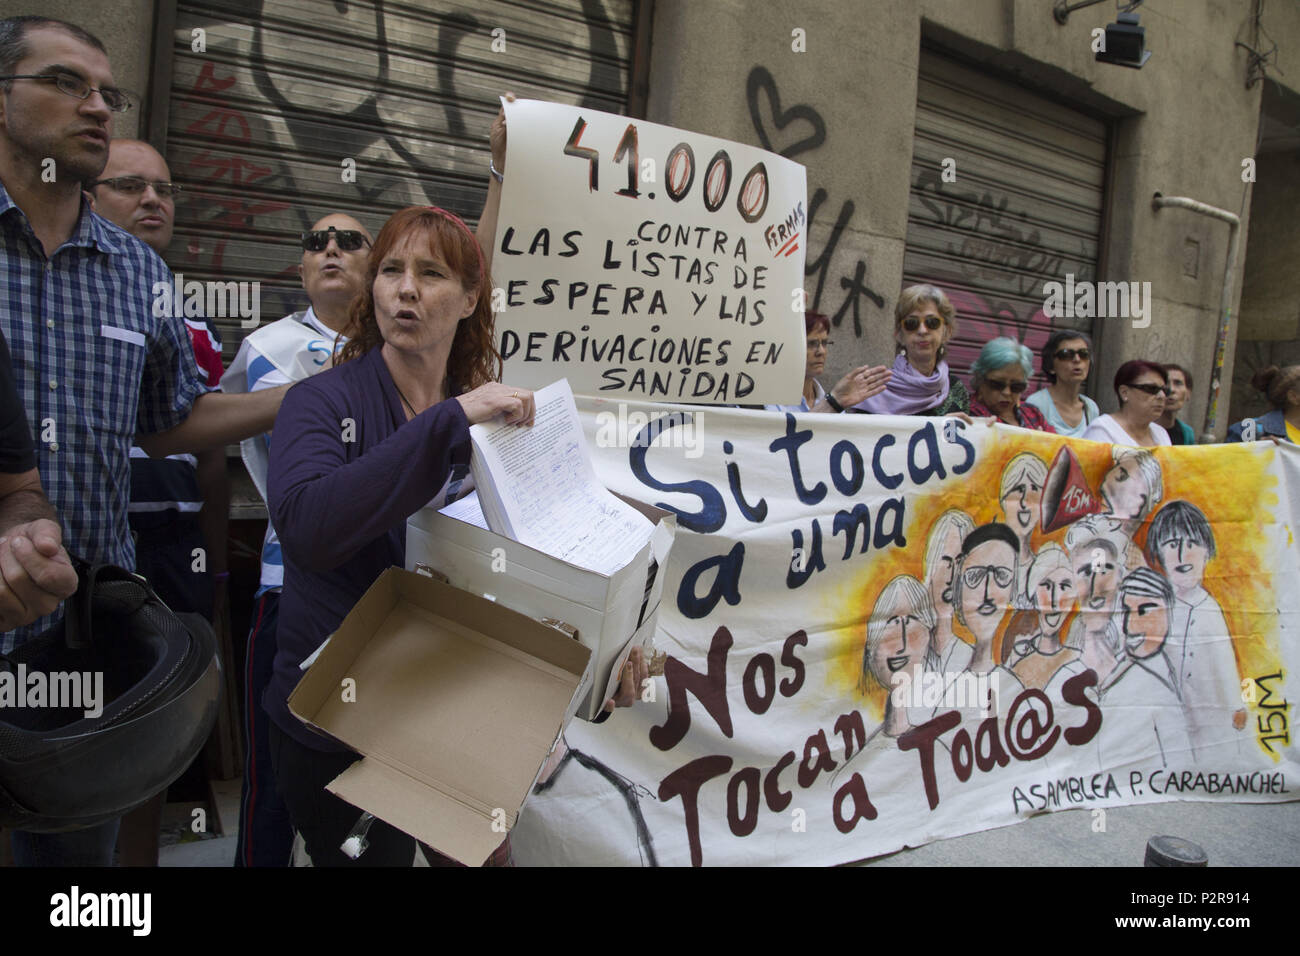 June 14, 2018 - Madrid, Spain - Demonstrators teach the collected signatures..Delivery of 41 000 signatures against waiting lists and referrals from public health to private healthcare. (Credit Image: © Lito Lizana/SOPA Images via ZUMA Wire) - Stock Image